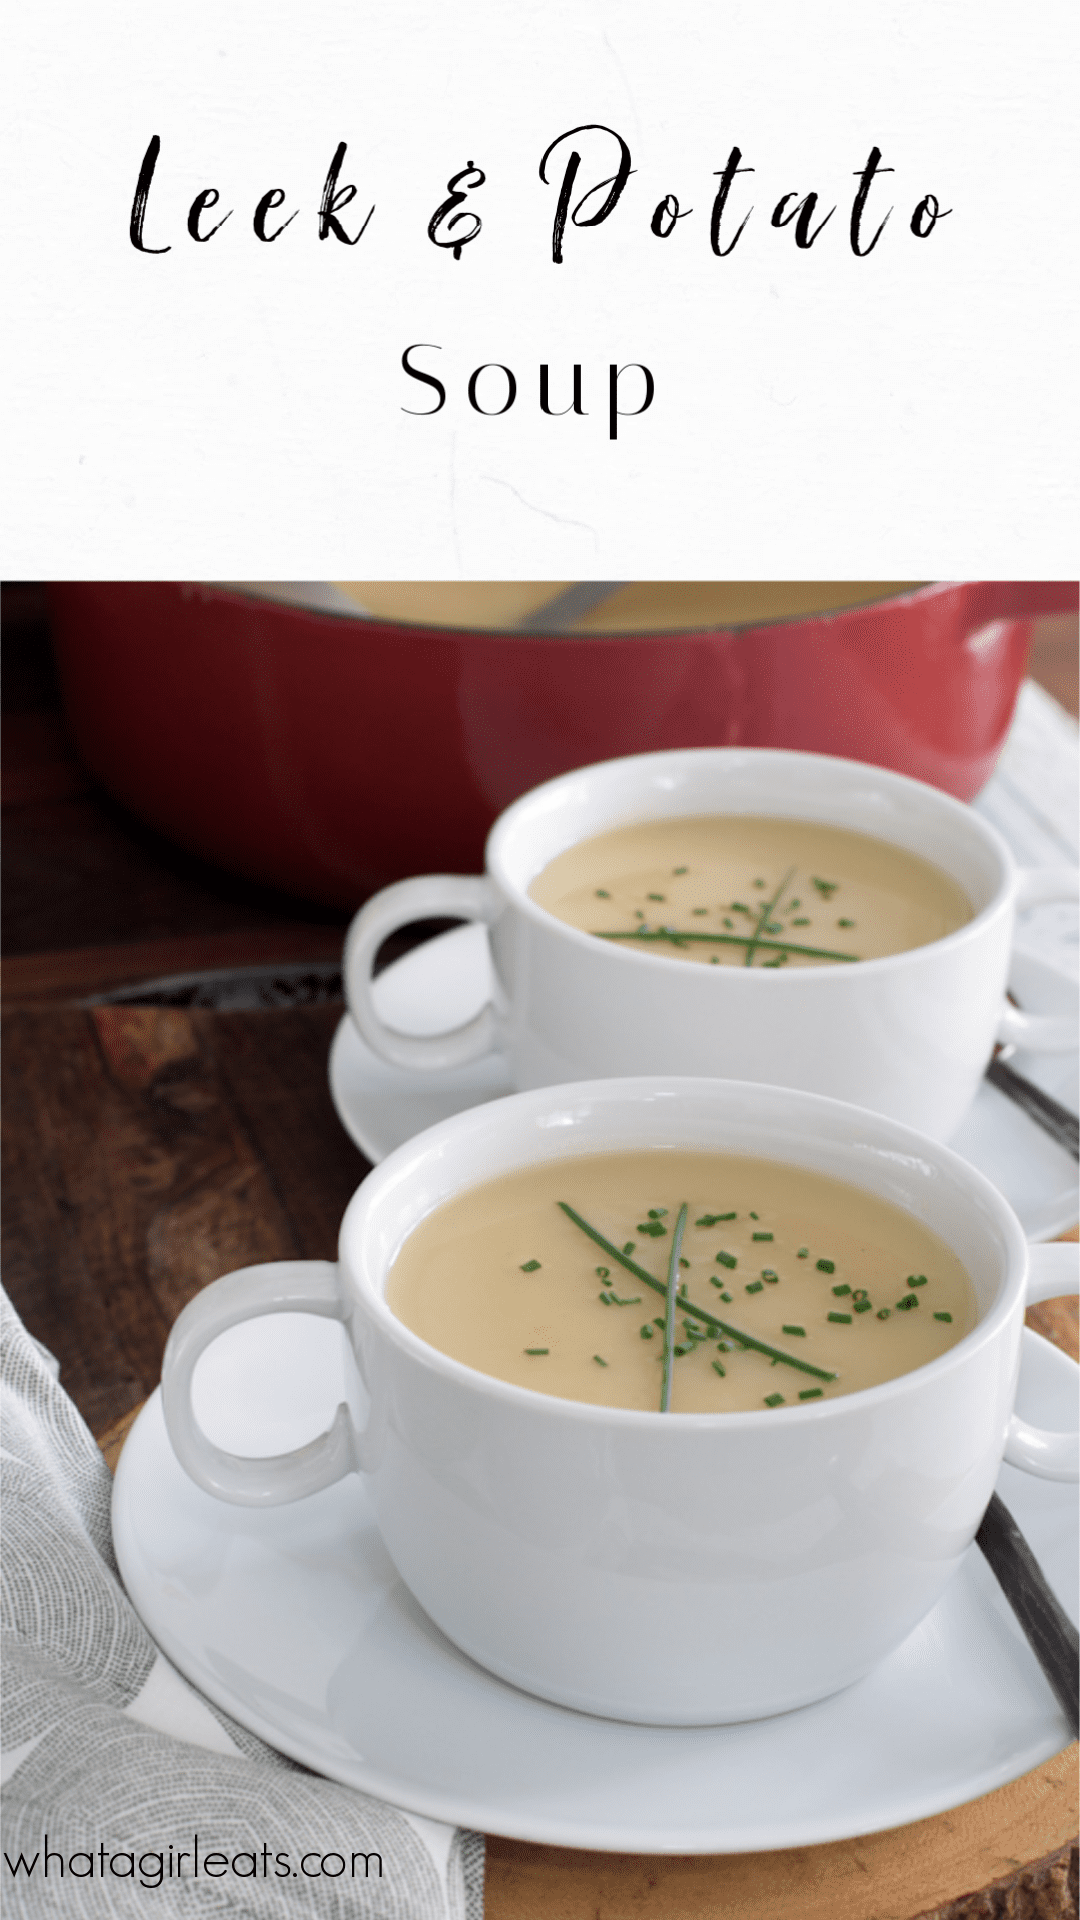 Classic leek and potato soup is a budget friendly and easy recipe. Add cheese and bacon for baked potato soup. Swap out the chicken broth for vegetable stock for a vegetarian version.